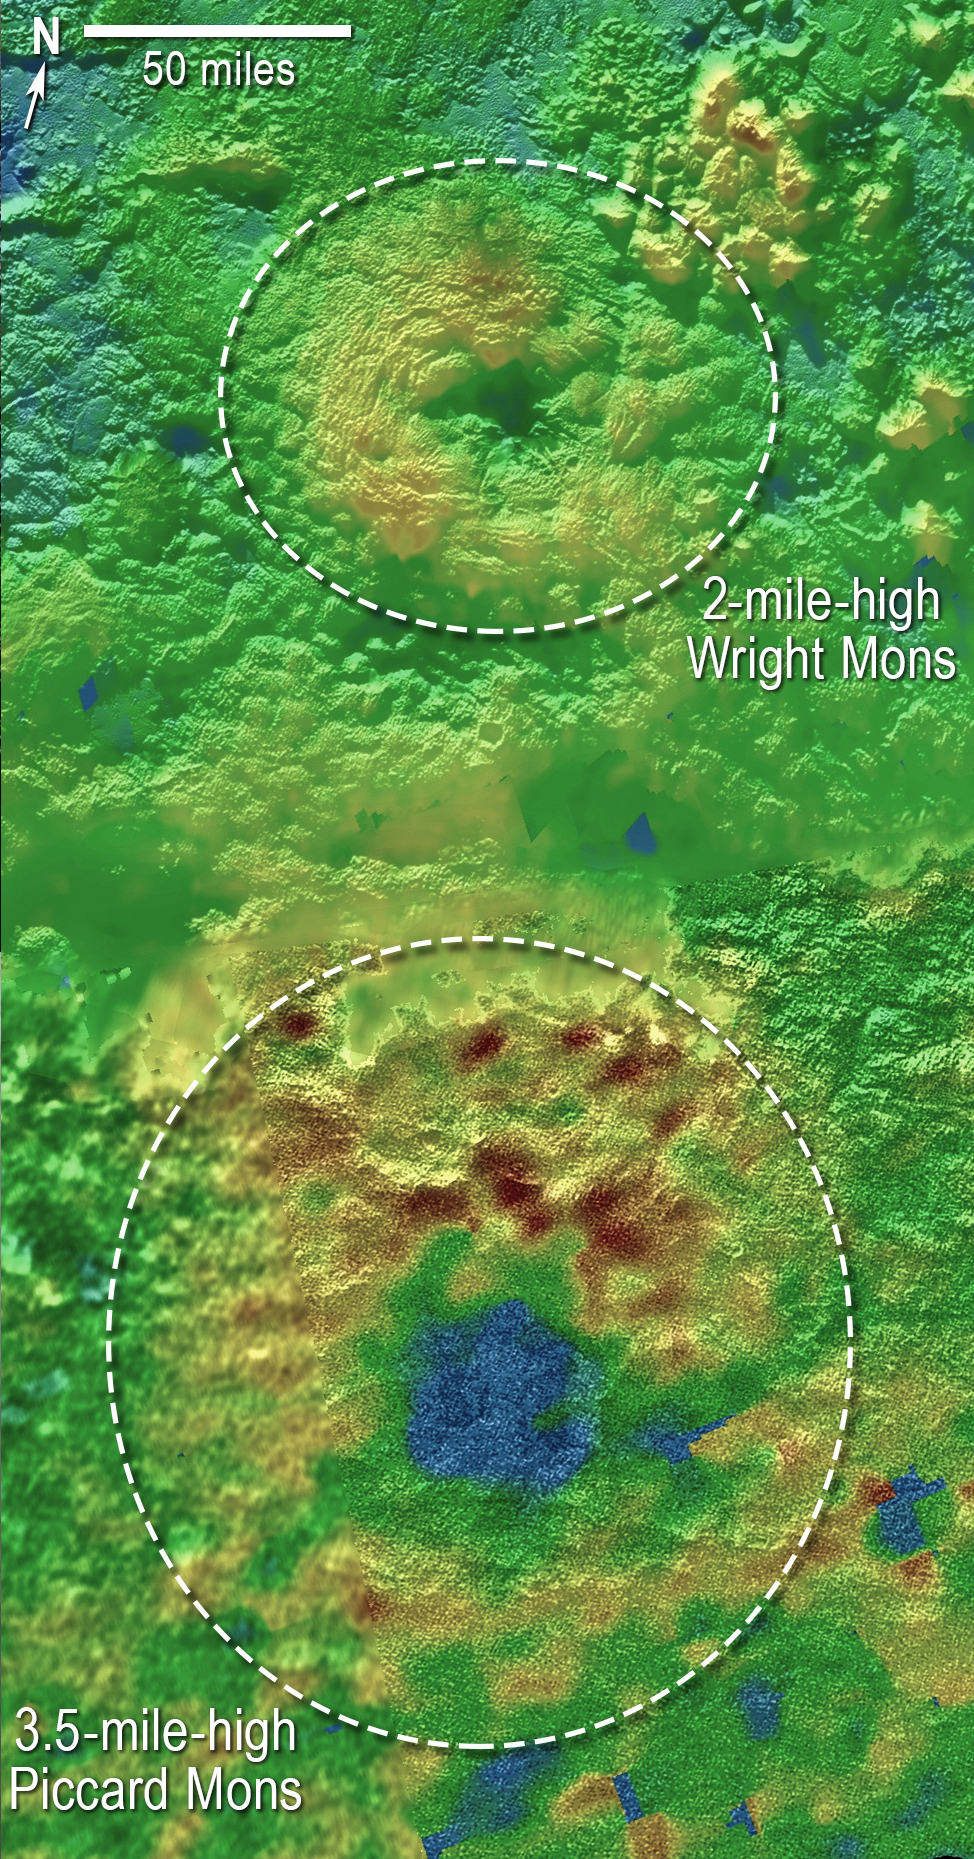 Using New Horizons images of Pluto's surface to make 3-D topographic maps, scientists discovered that two of Pluto's mountains, informally named Wright Mons and Piccard Mons, could be ice volcanoes. The color depicts changes in elevation, blue indicating lower terrain and brown showing higher elevation. Green terrains are at intermediate heights. Image credit: NASA/JHUAPL/SwRI